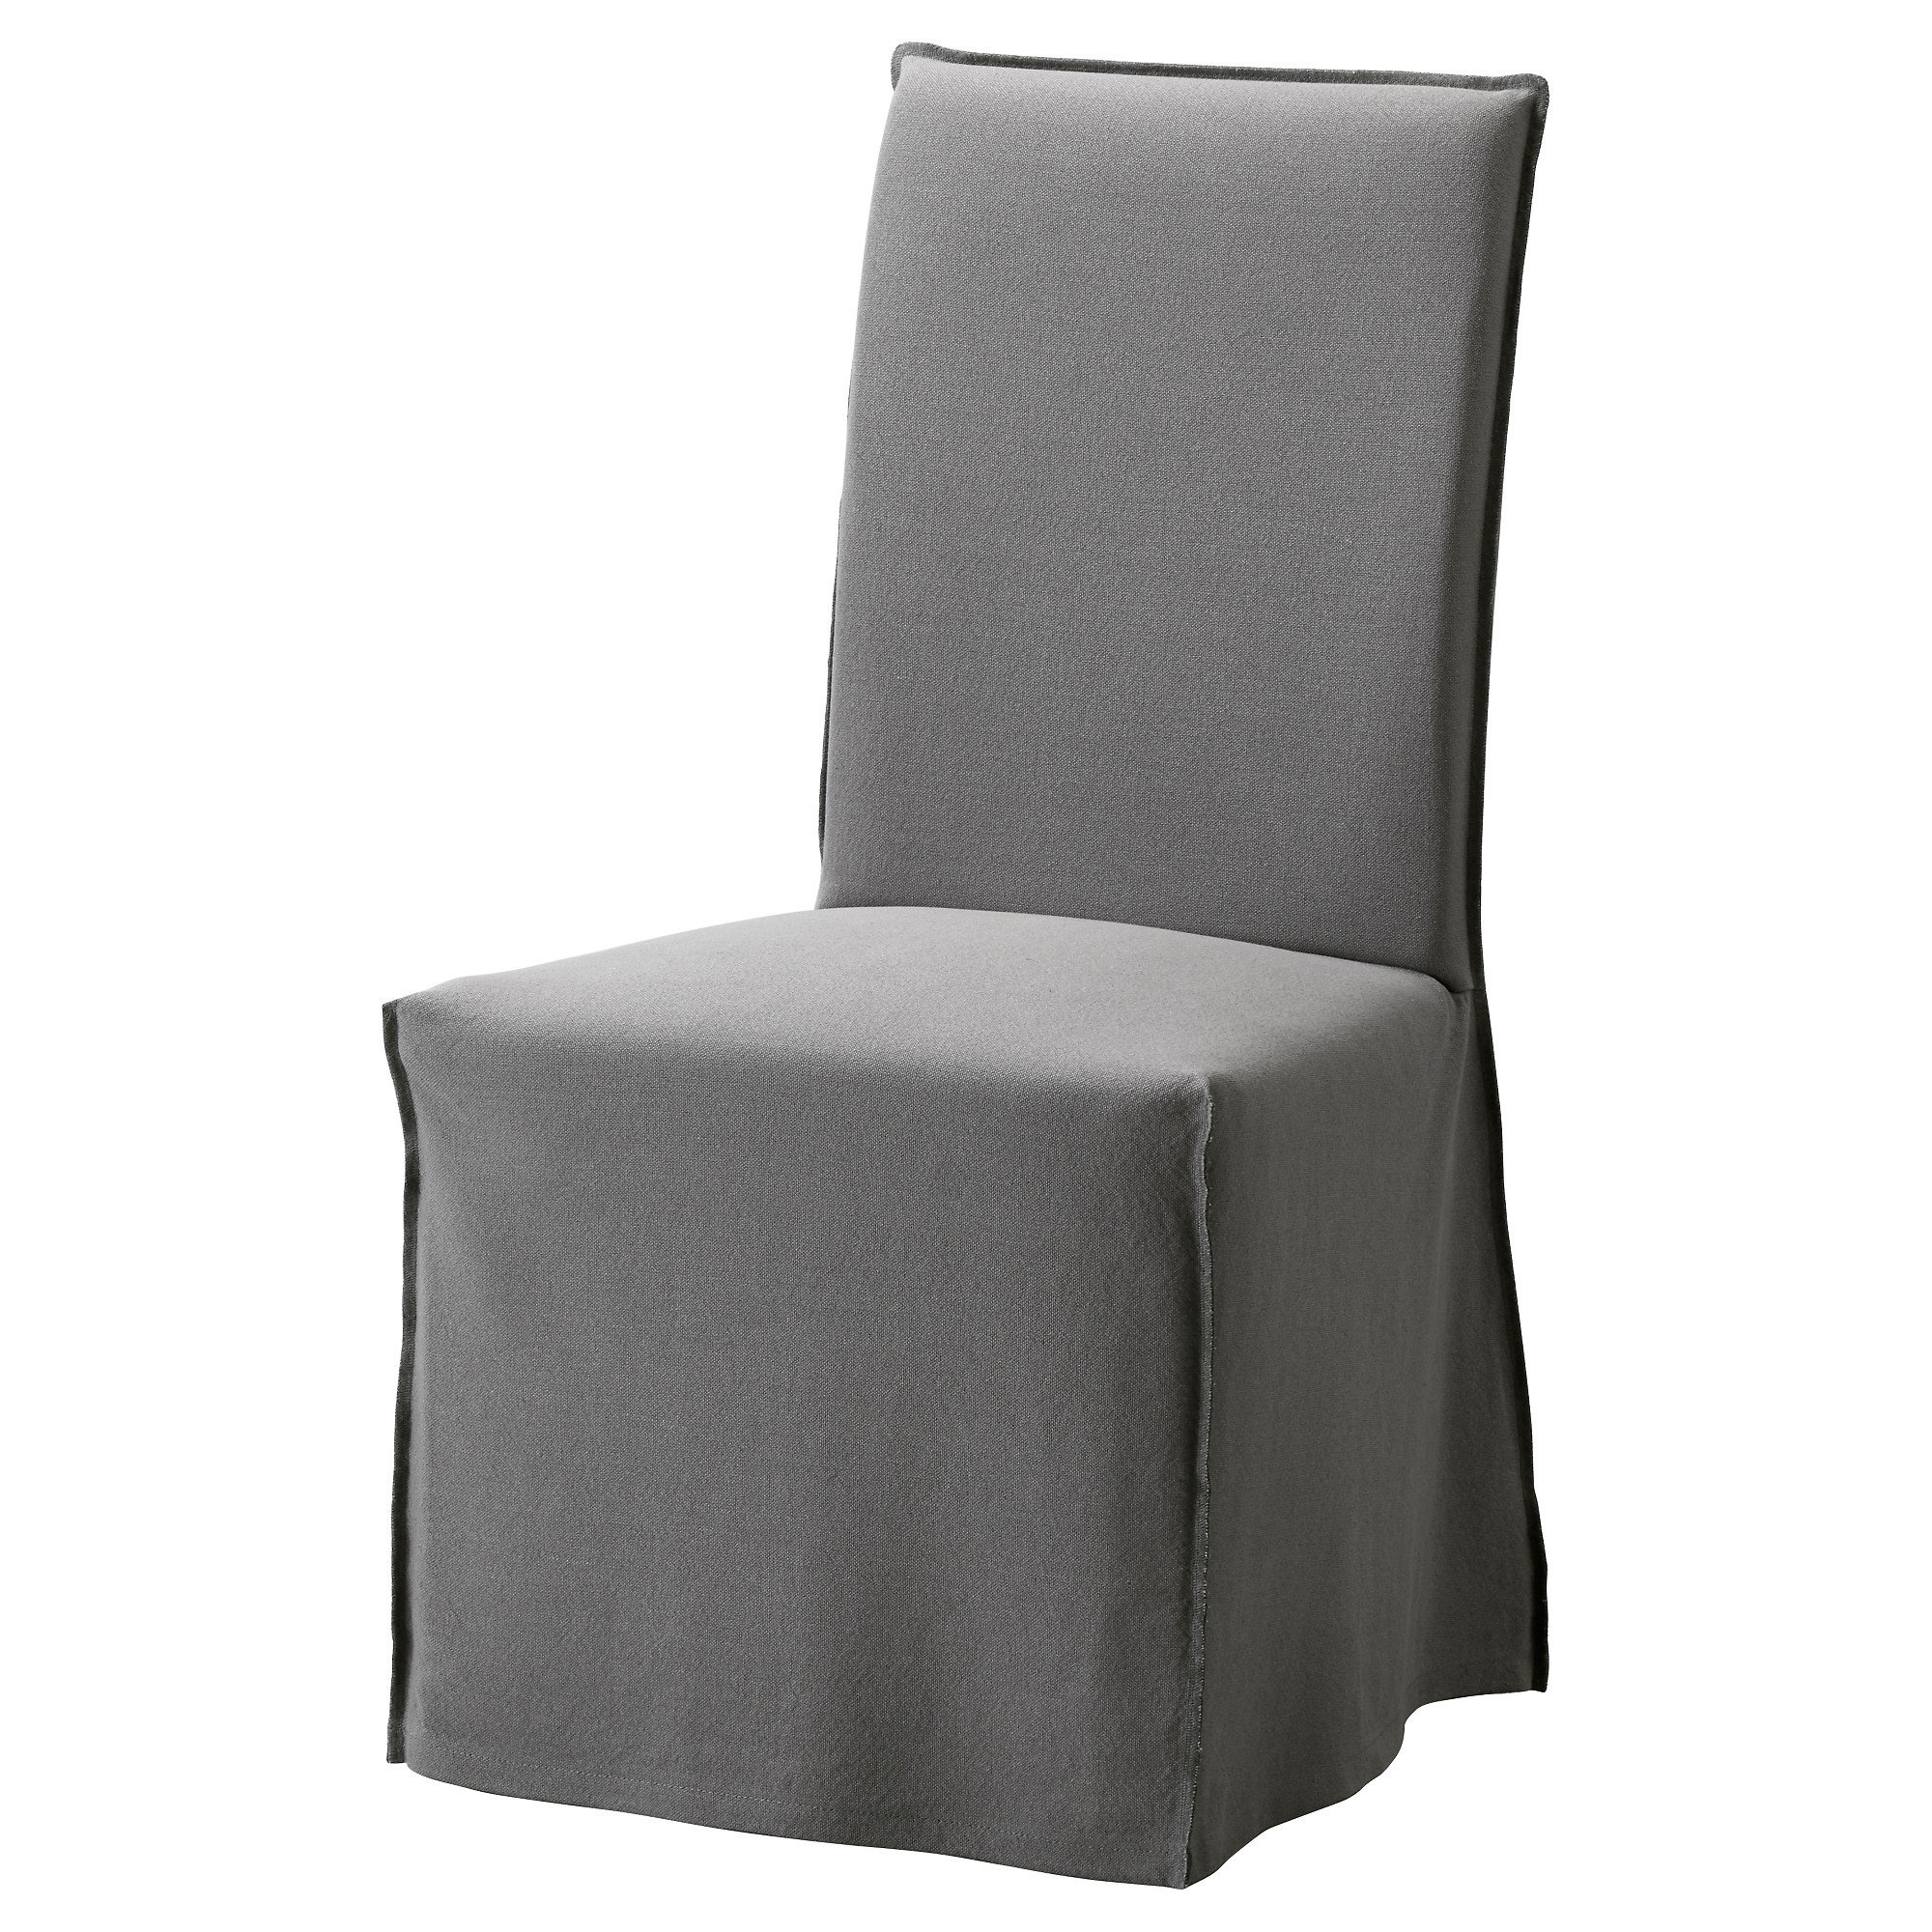 HENRIKSDAL Chair cover  long   IKEA. High Back Dining Chairs Ikea. Home Design Ideas